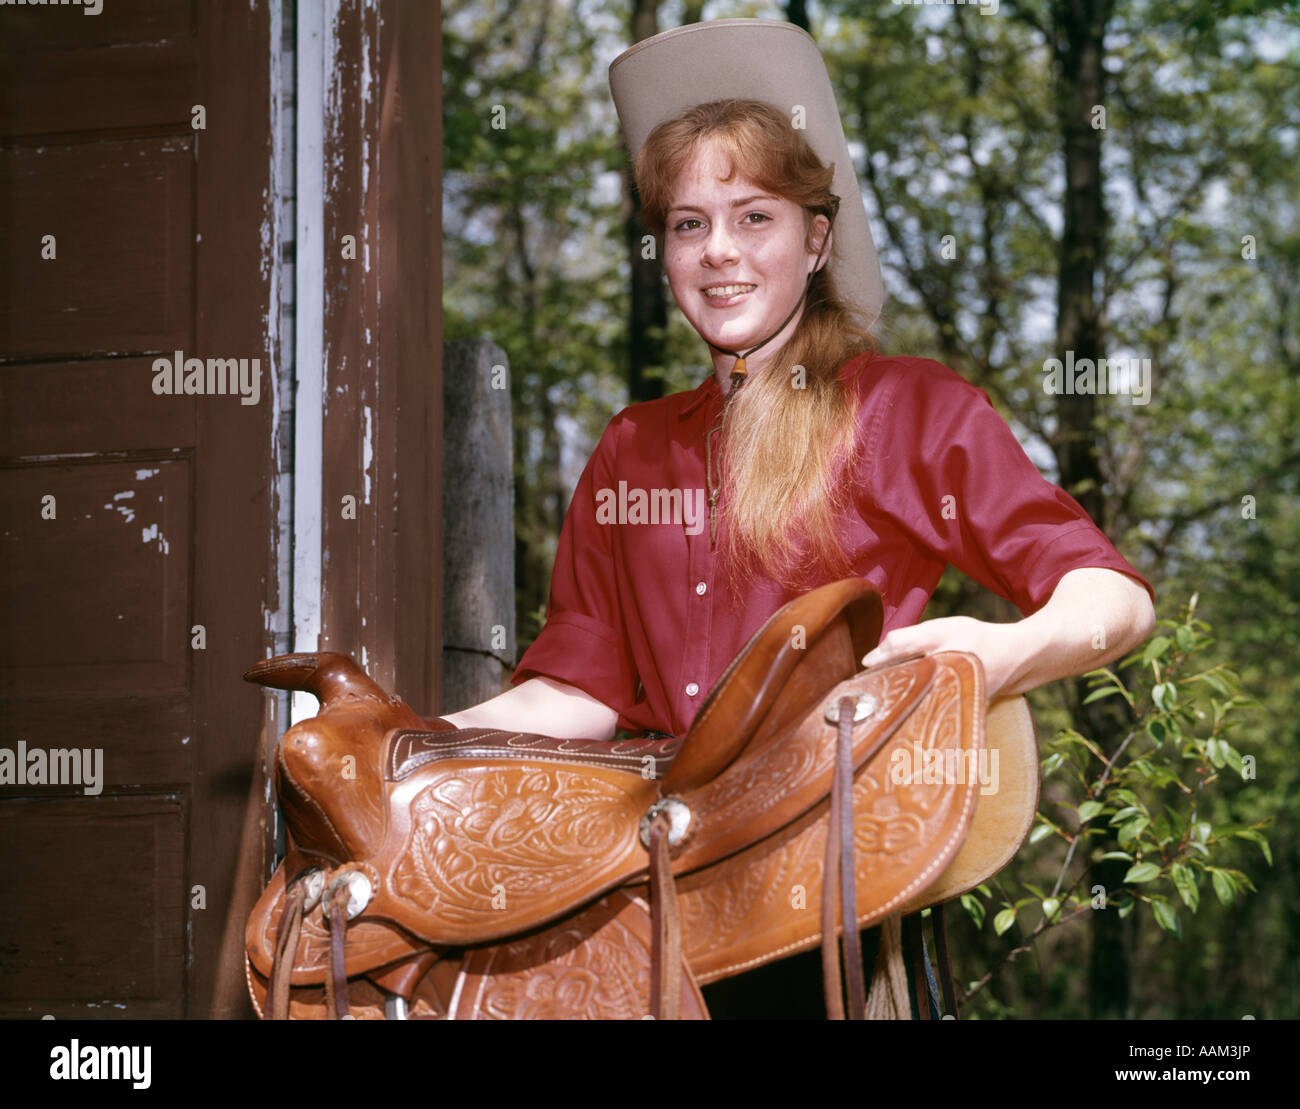 1960s TEEN GIRL RED SHIRT COWBOY HAT CARRYING WESTERN LEATHER SADDLE COWGIRL HORSEBACK RIDER - Stock Image